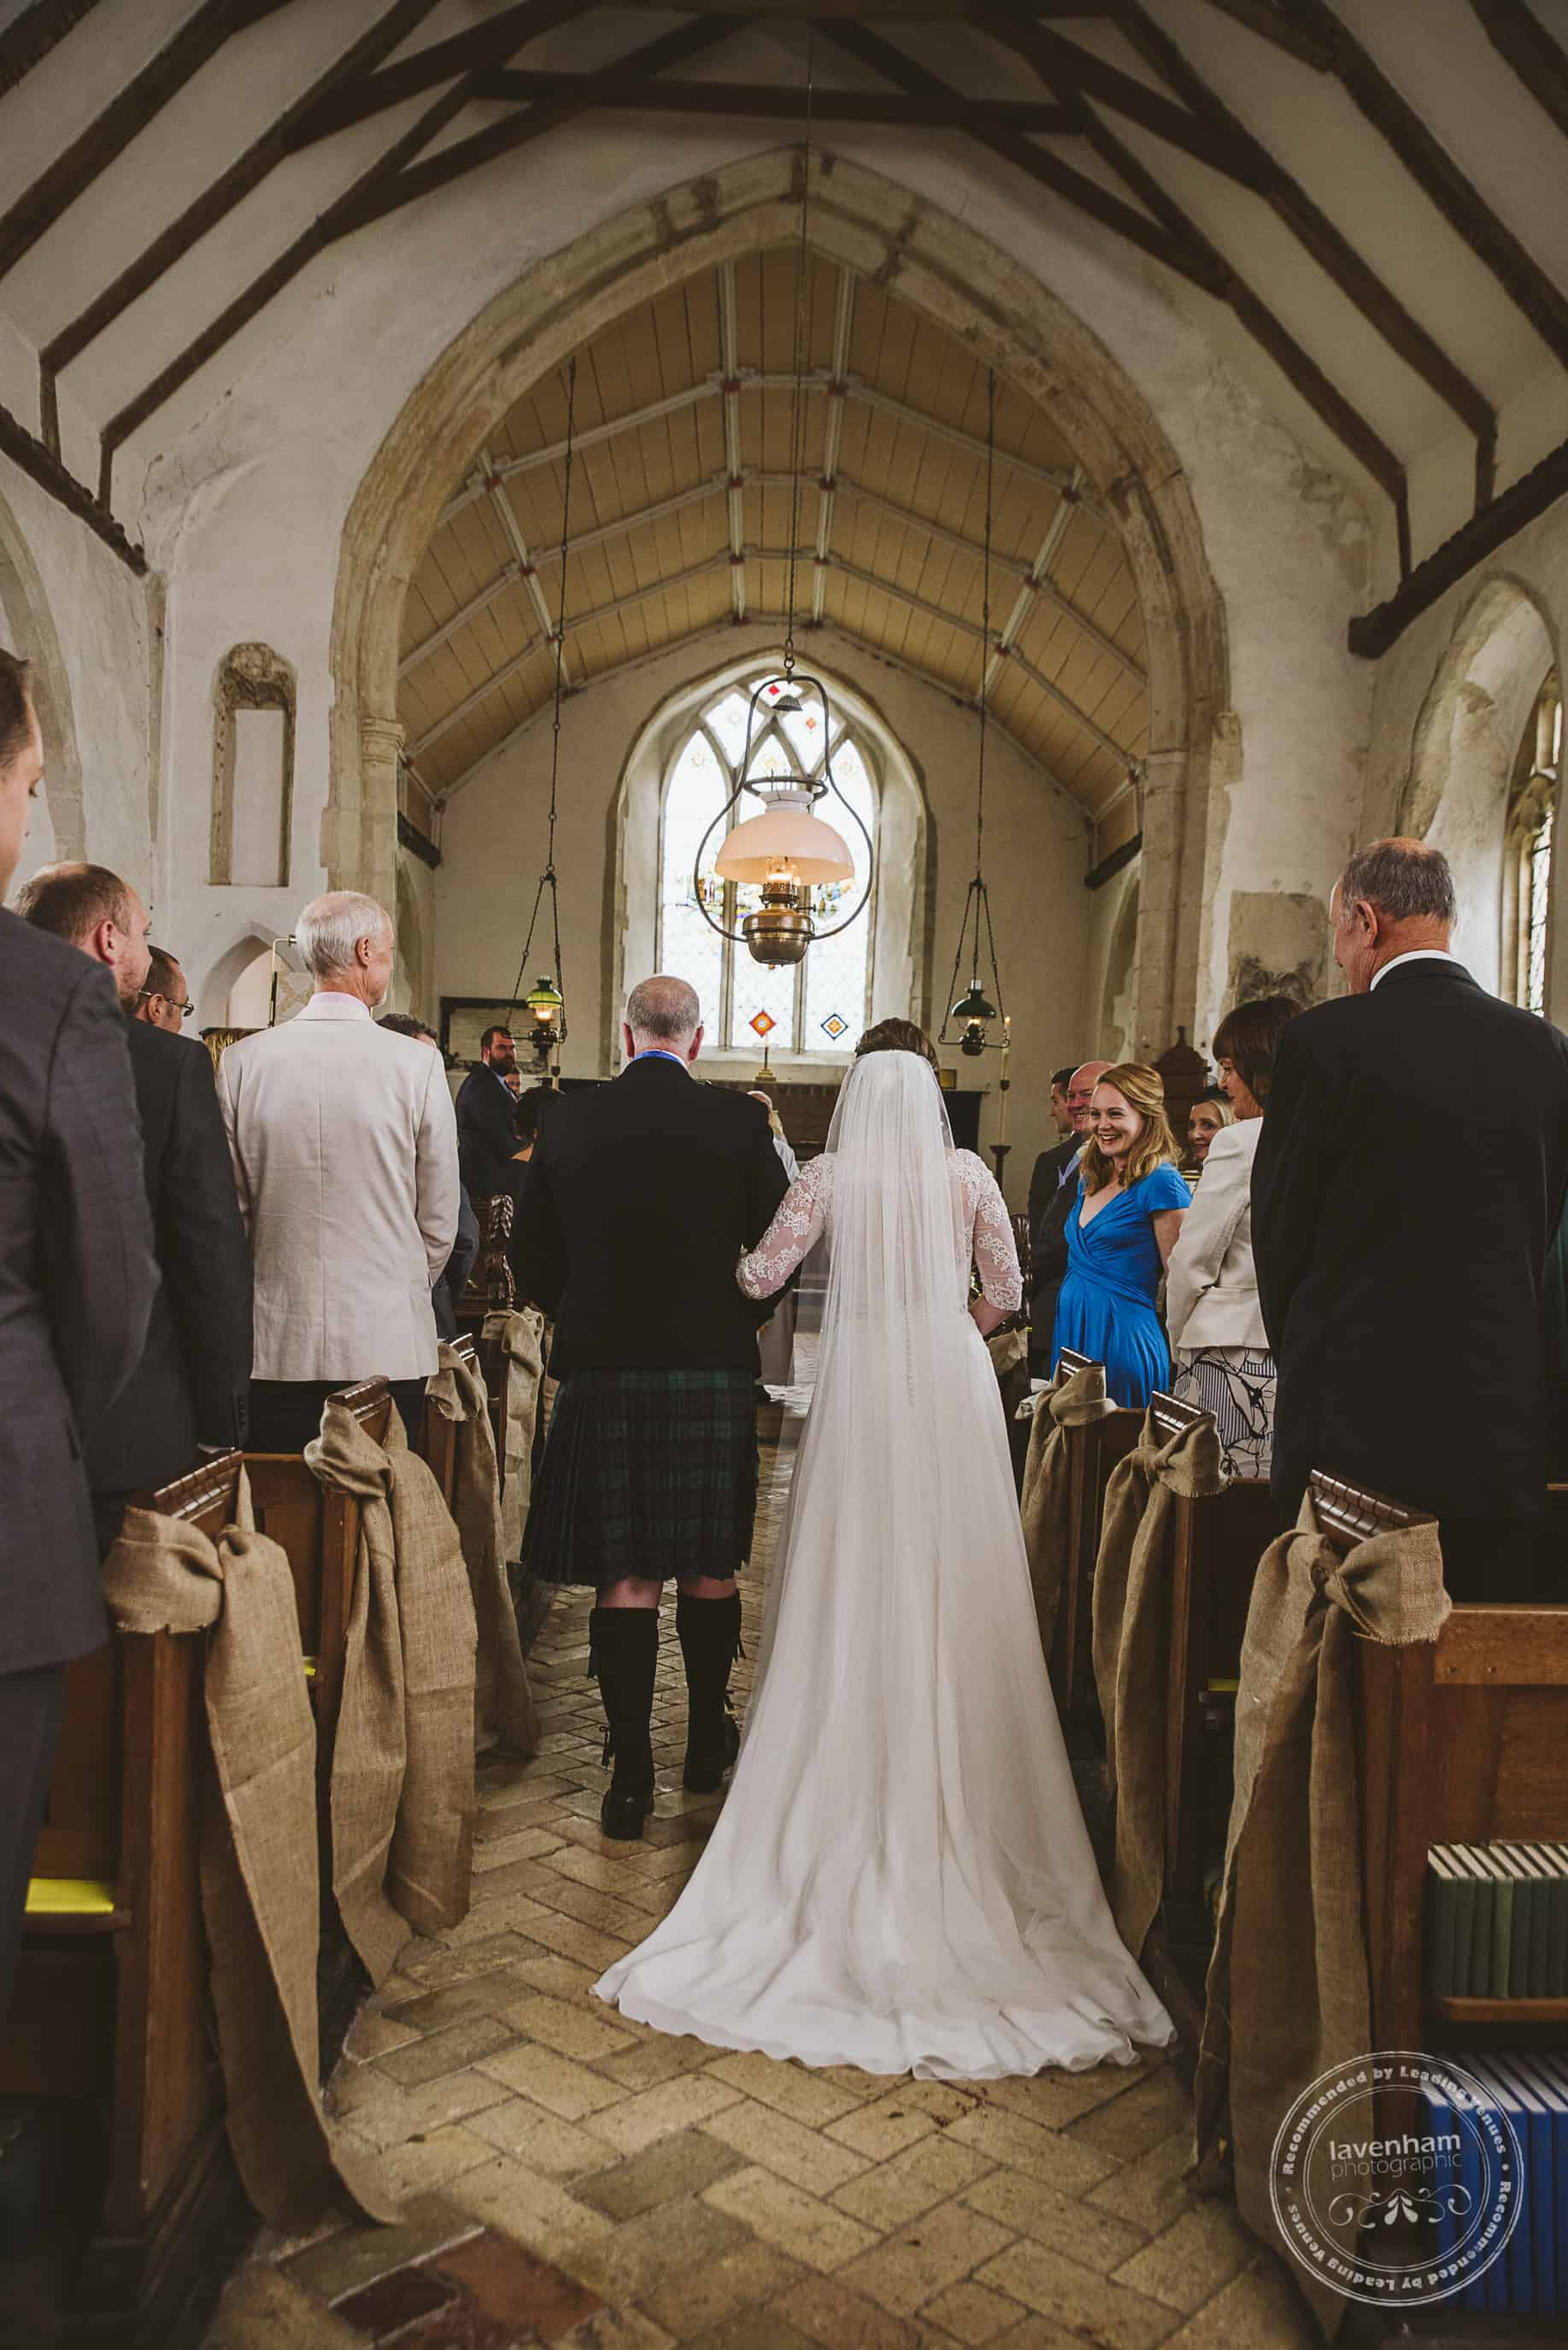 220918 Alpheton Barn Wedding Photography by Lavenham Photographic 049